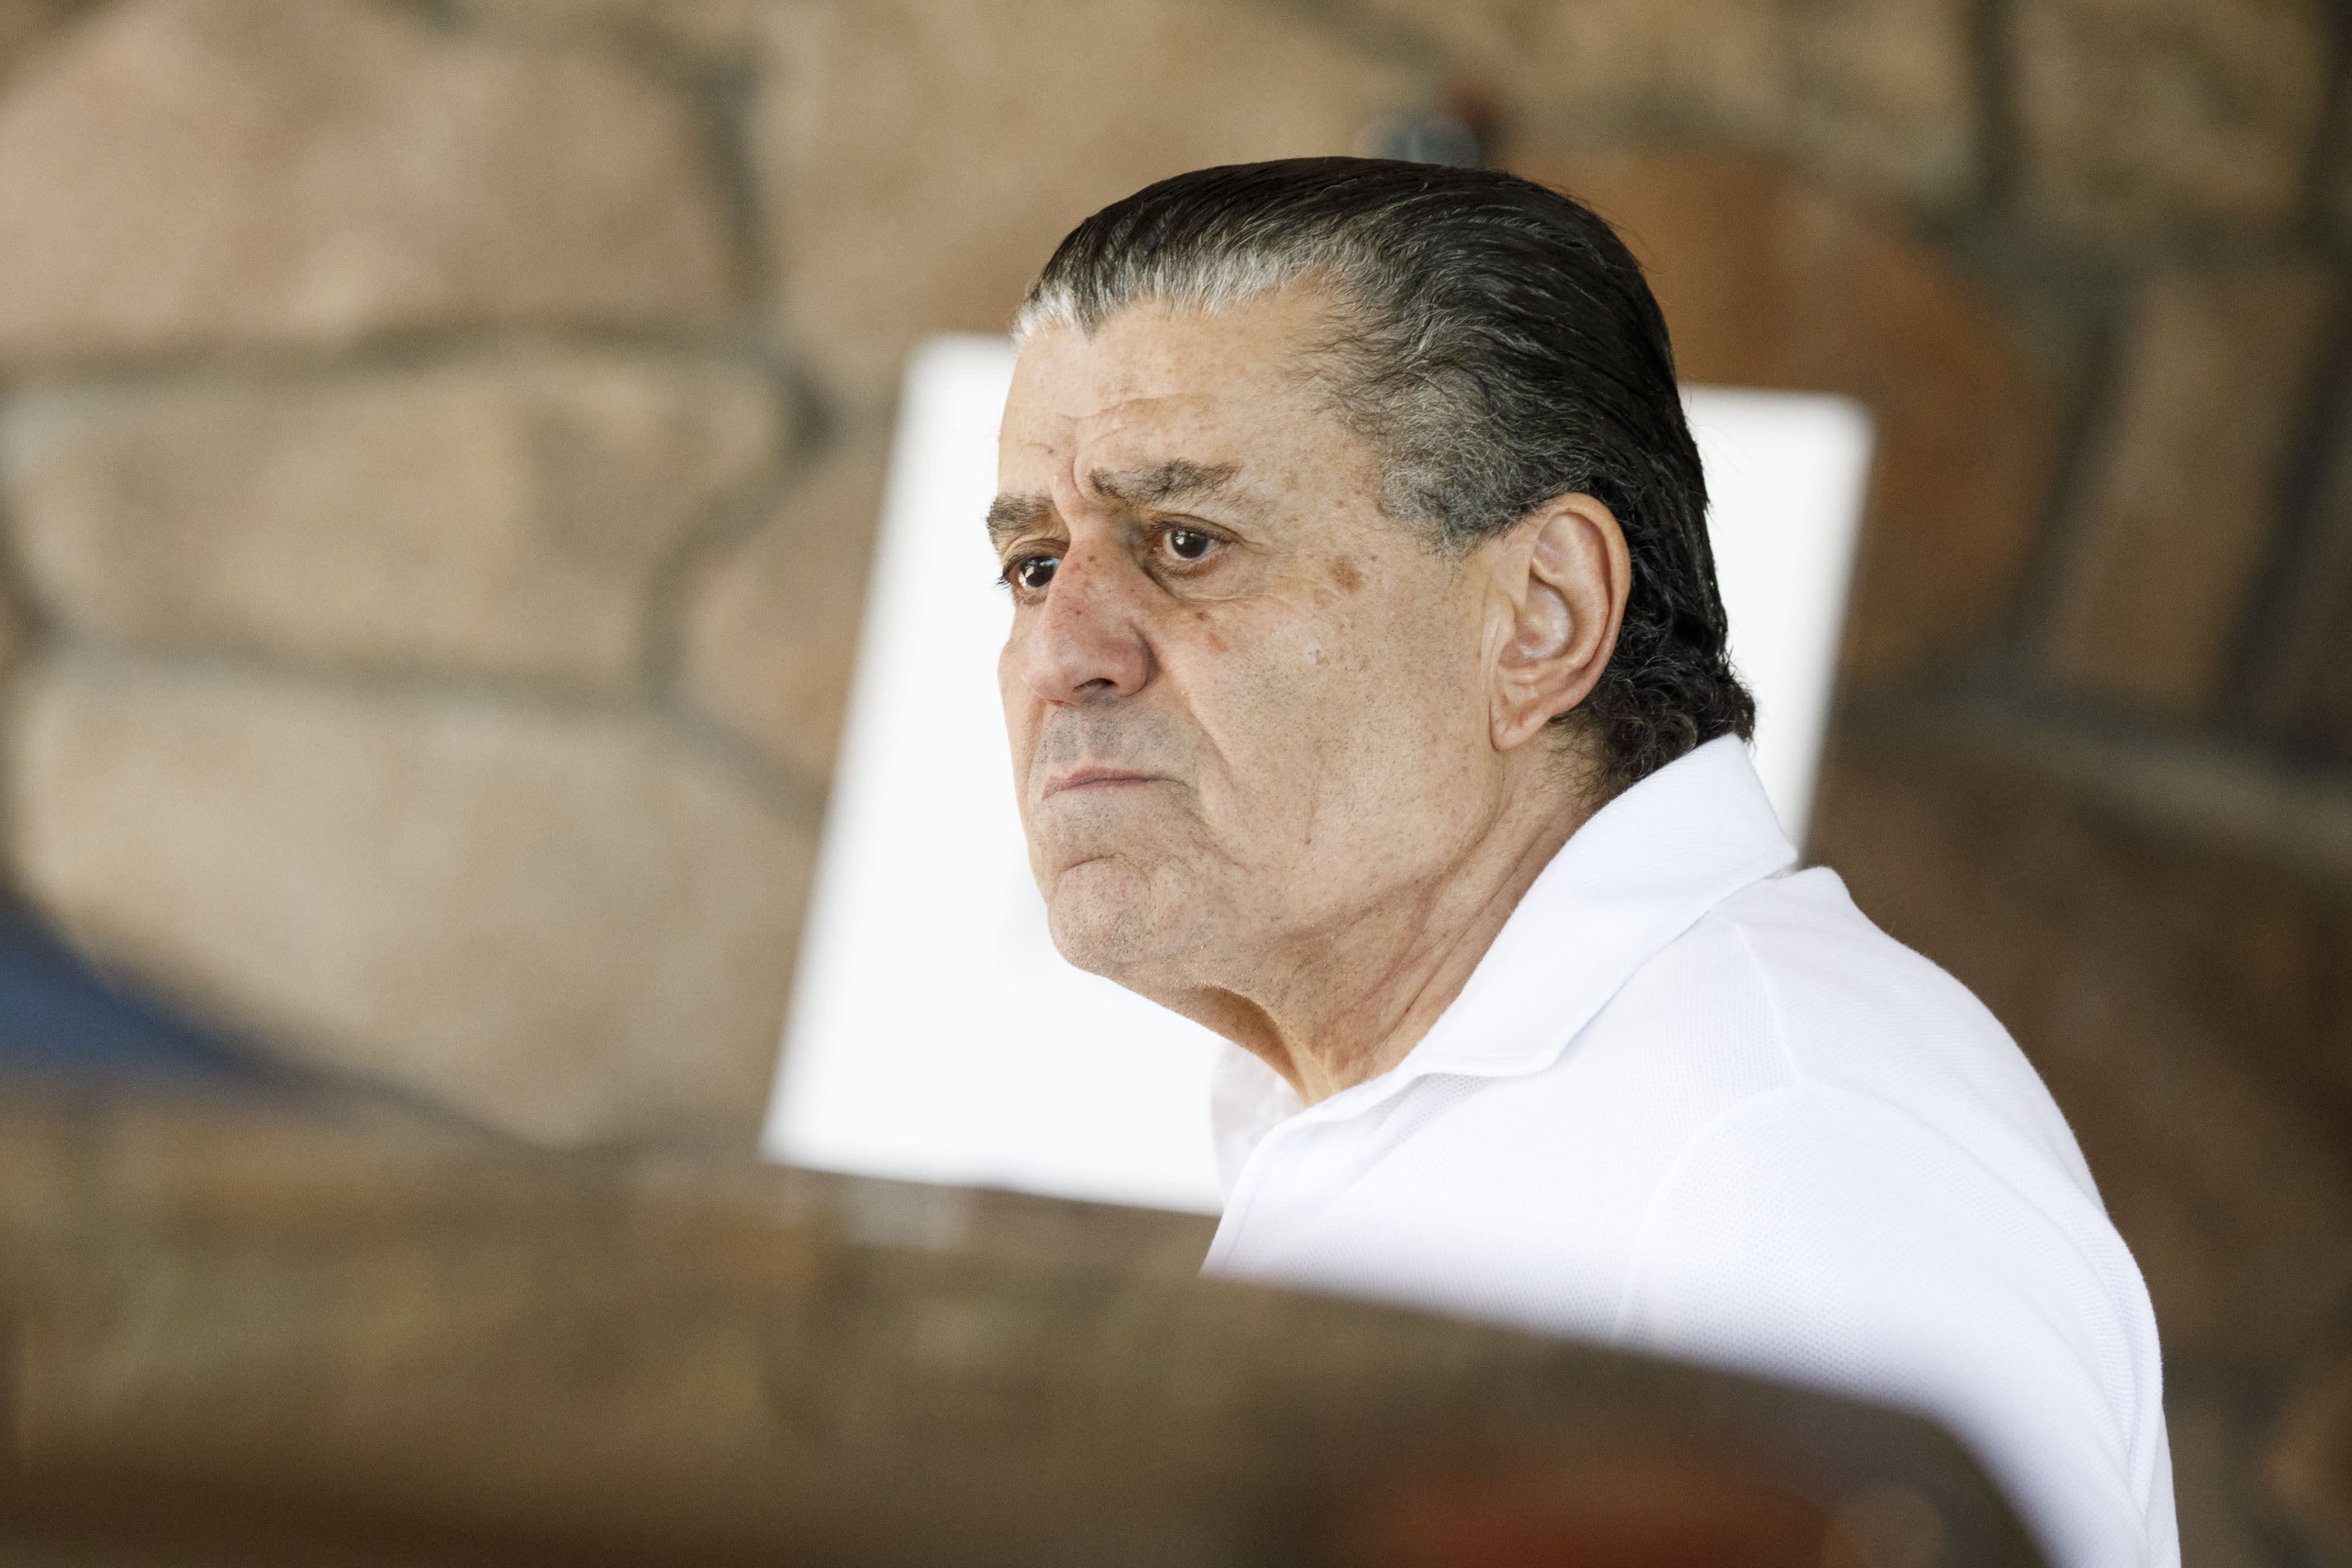 Democratic megadonor Haim Saban will not back a 2020 presidential candidate until after Super Tuesday